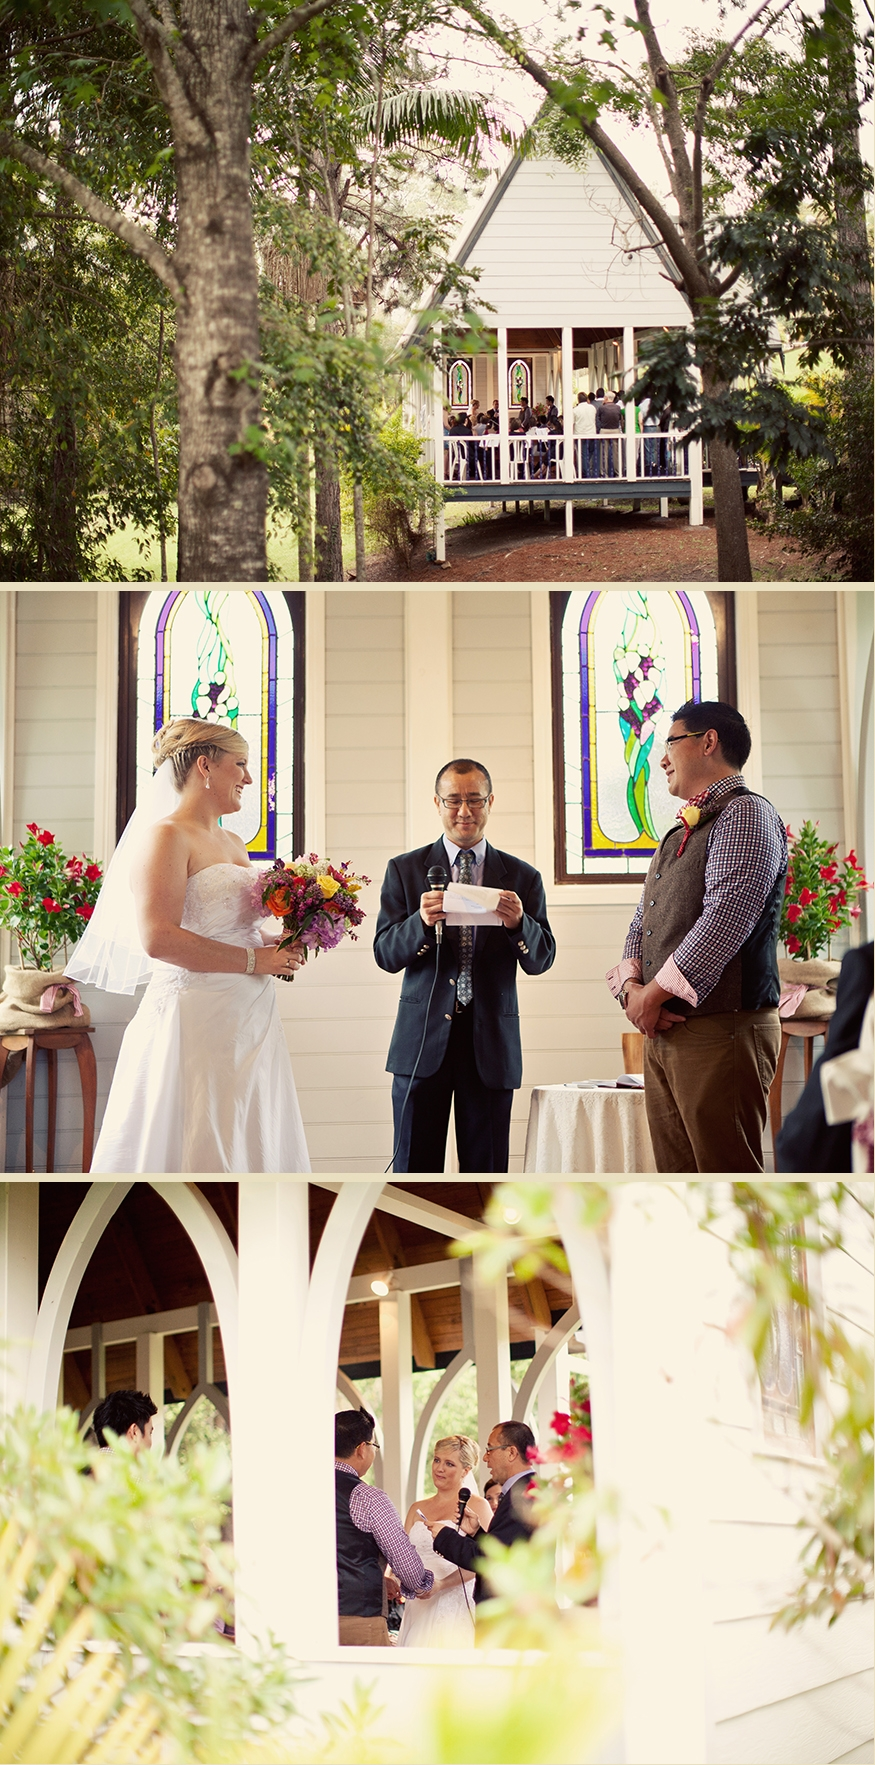 Brisbane Wedding Phoographer Blog collage-1330048153771